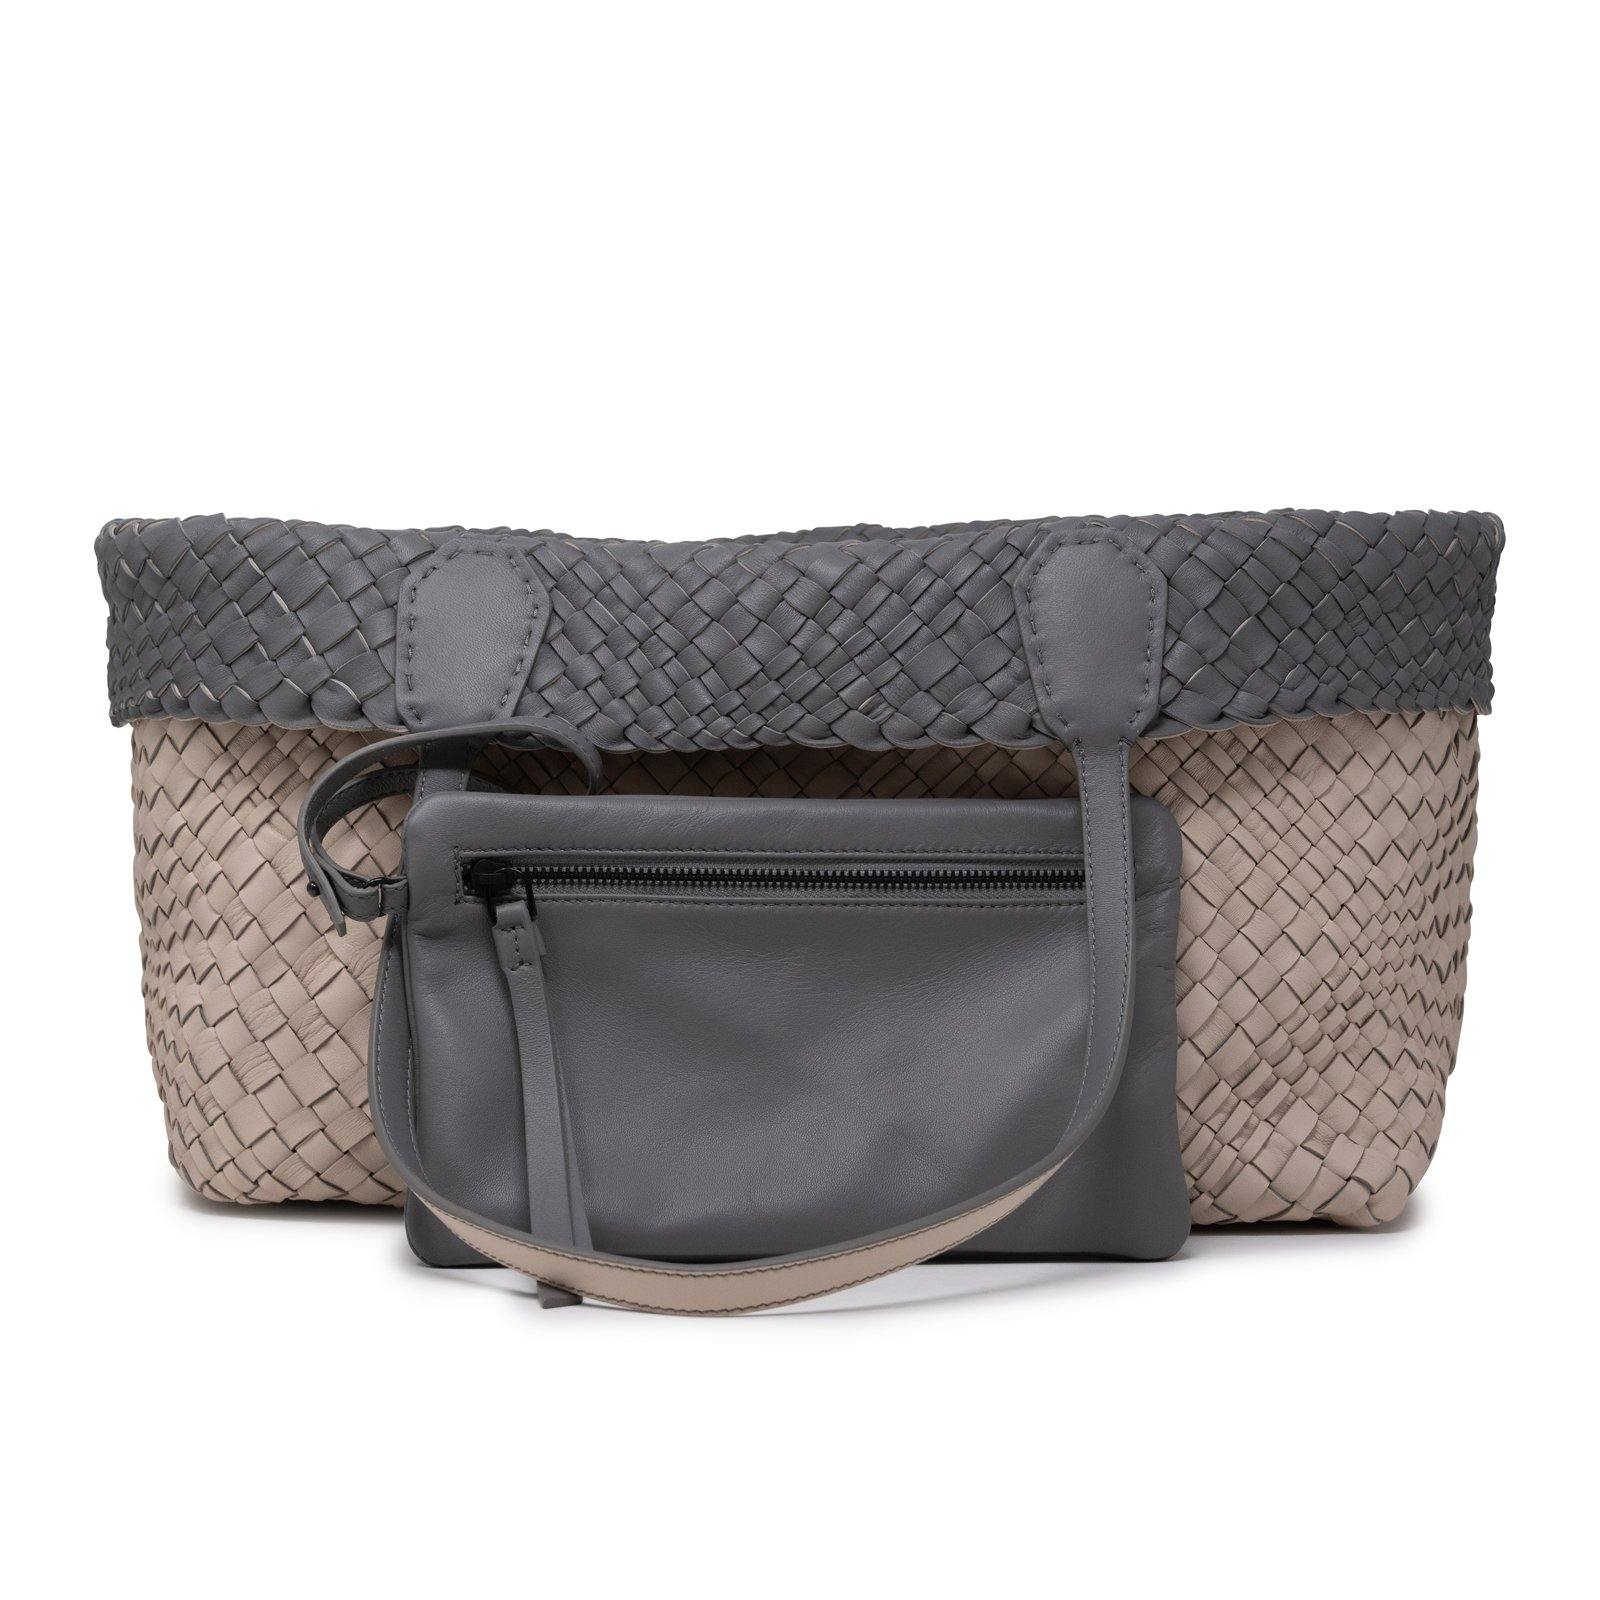 Women Leather Intreccio Optical Reversible Bag in Sabbia and Grey - Jennifer Tattanelli